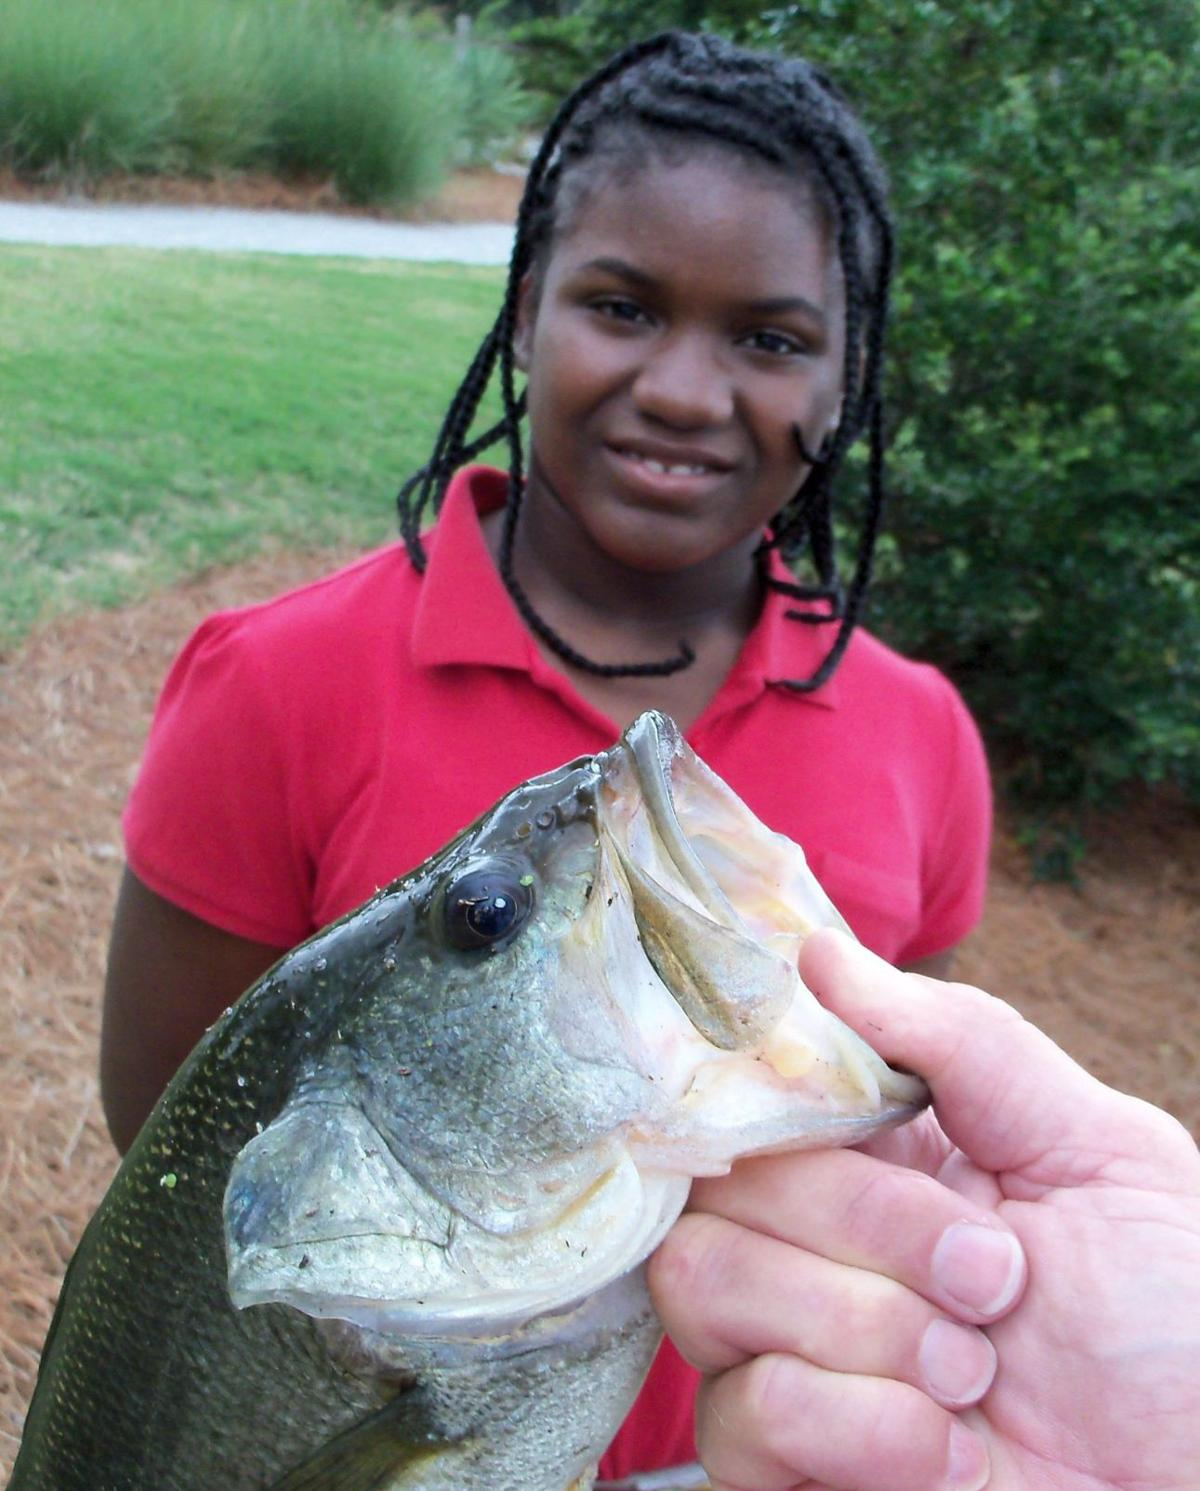 James Island Elementary students can earn fishing instruction